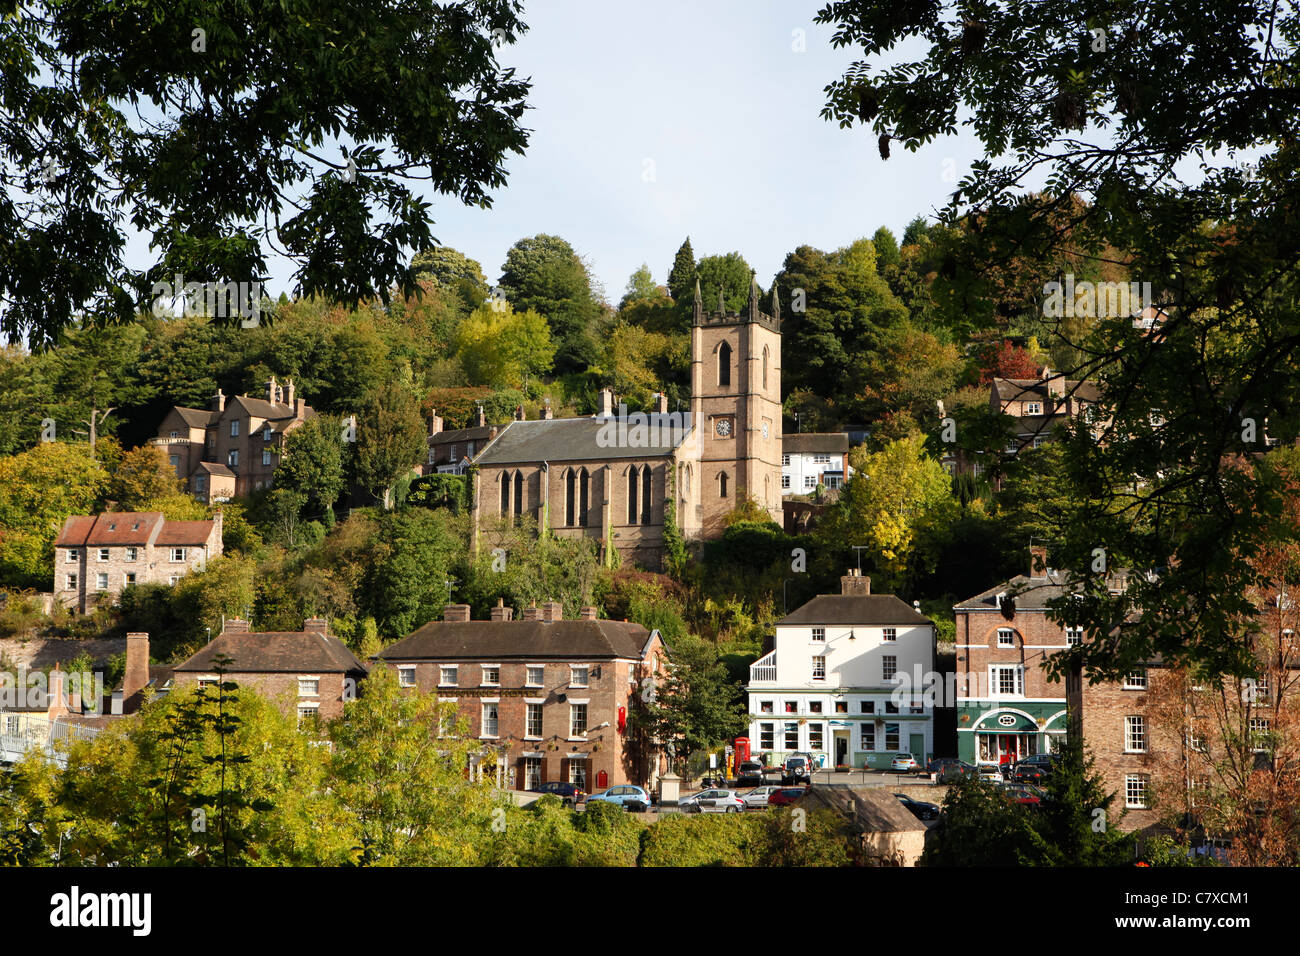 Ironbridge Gorge in Telford, Shropshire, England, World Heritage Site. - Stock Image